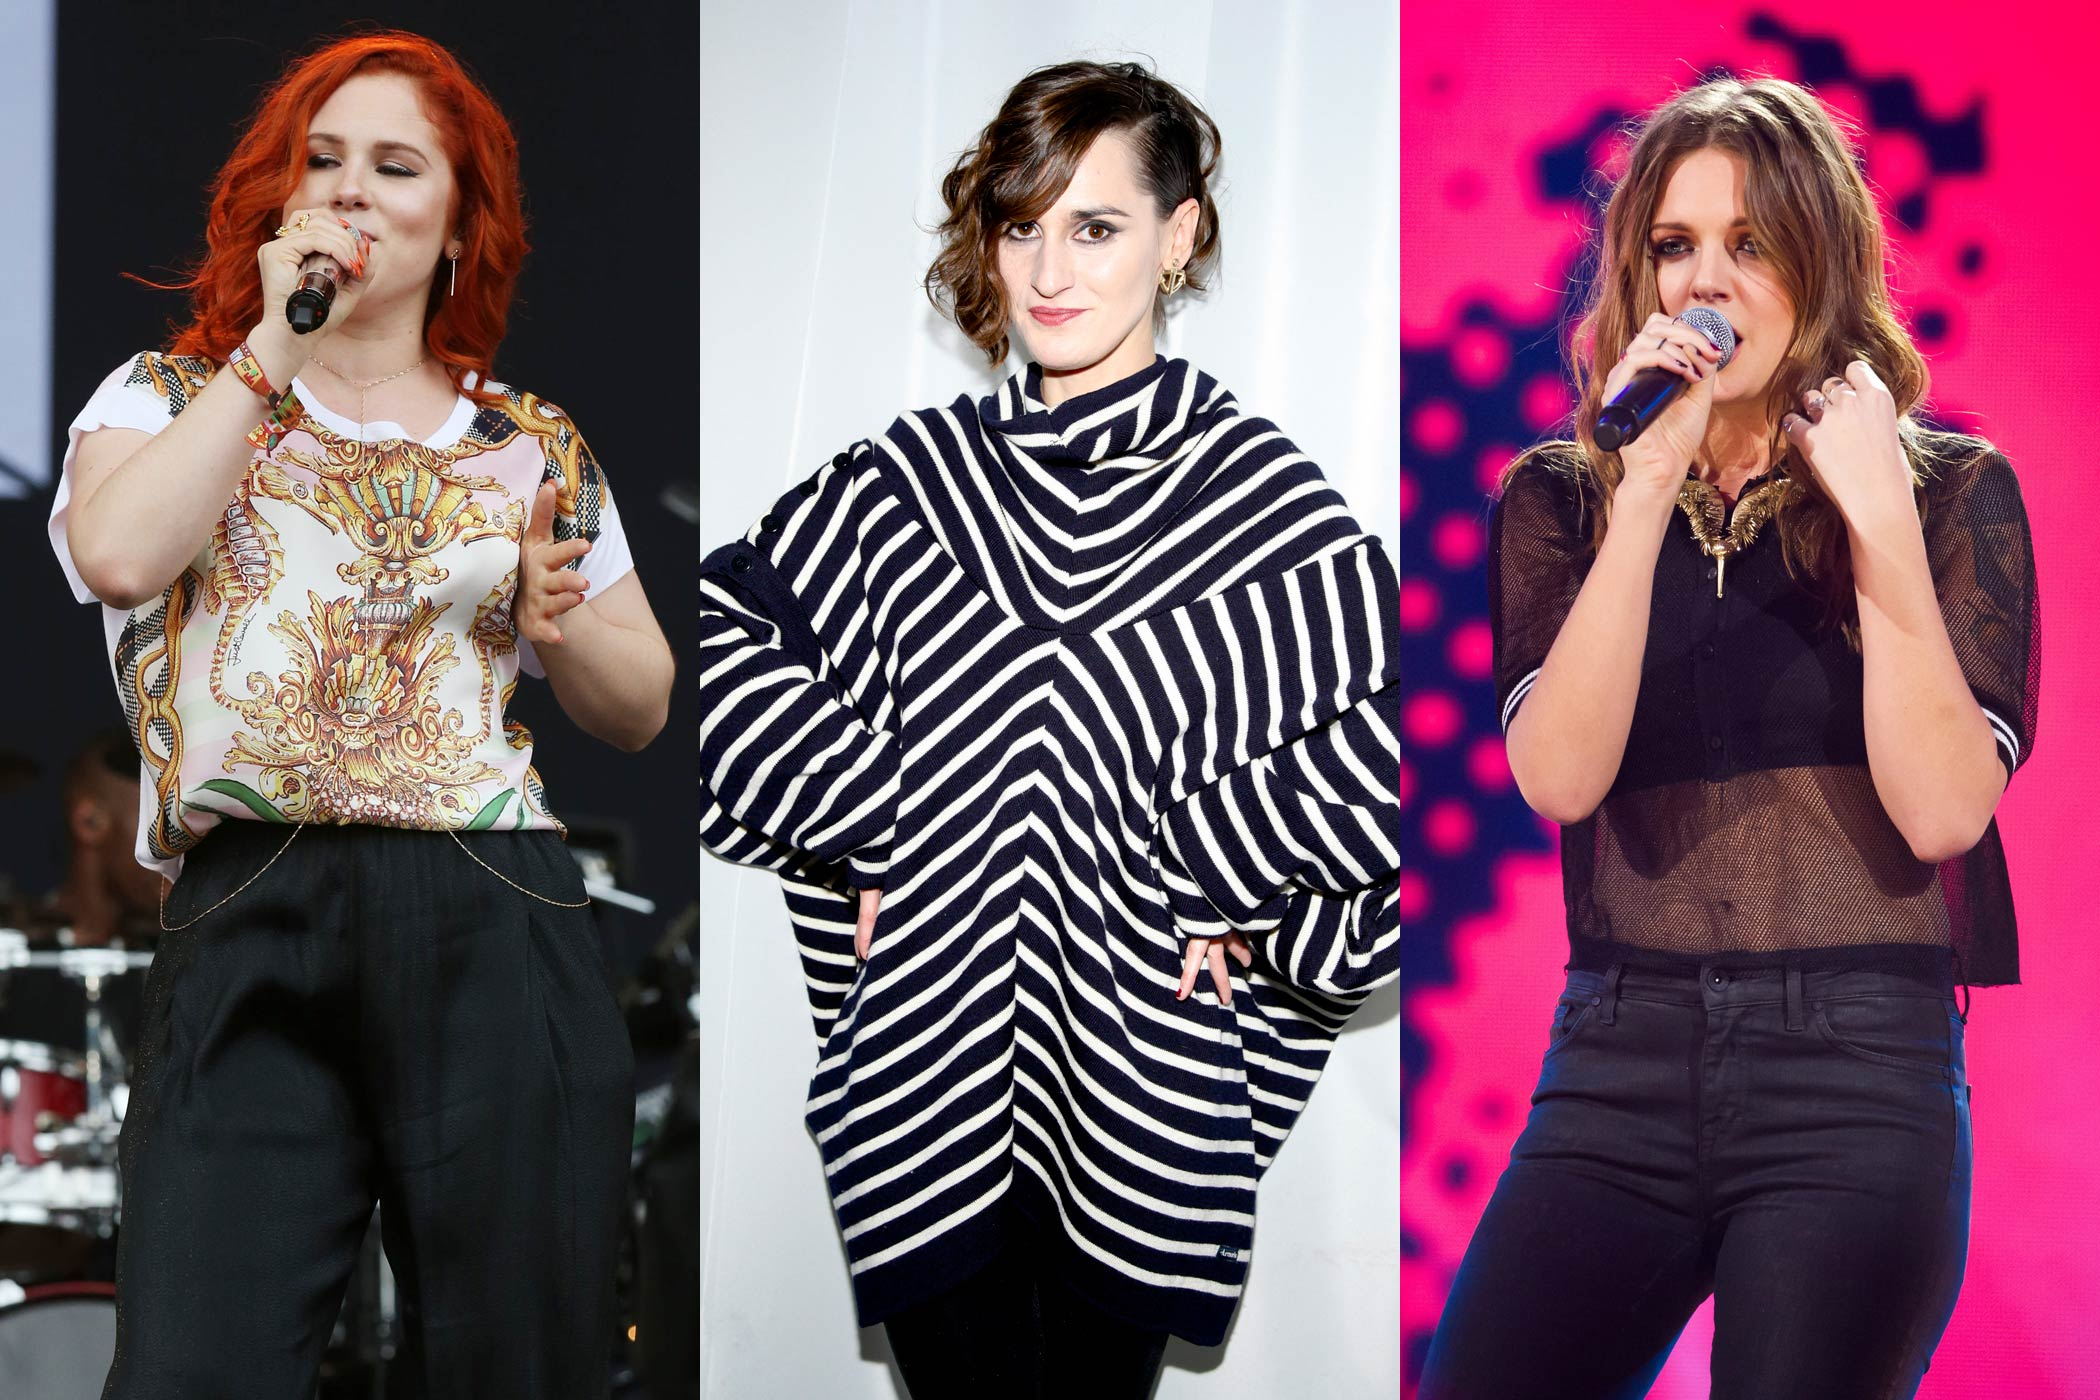 From left: Katy B; Julie Budet of Yelle; Tove Lo